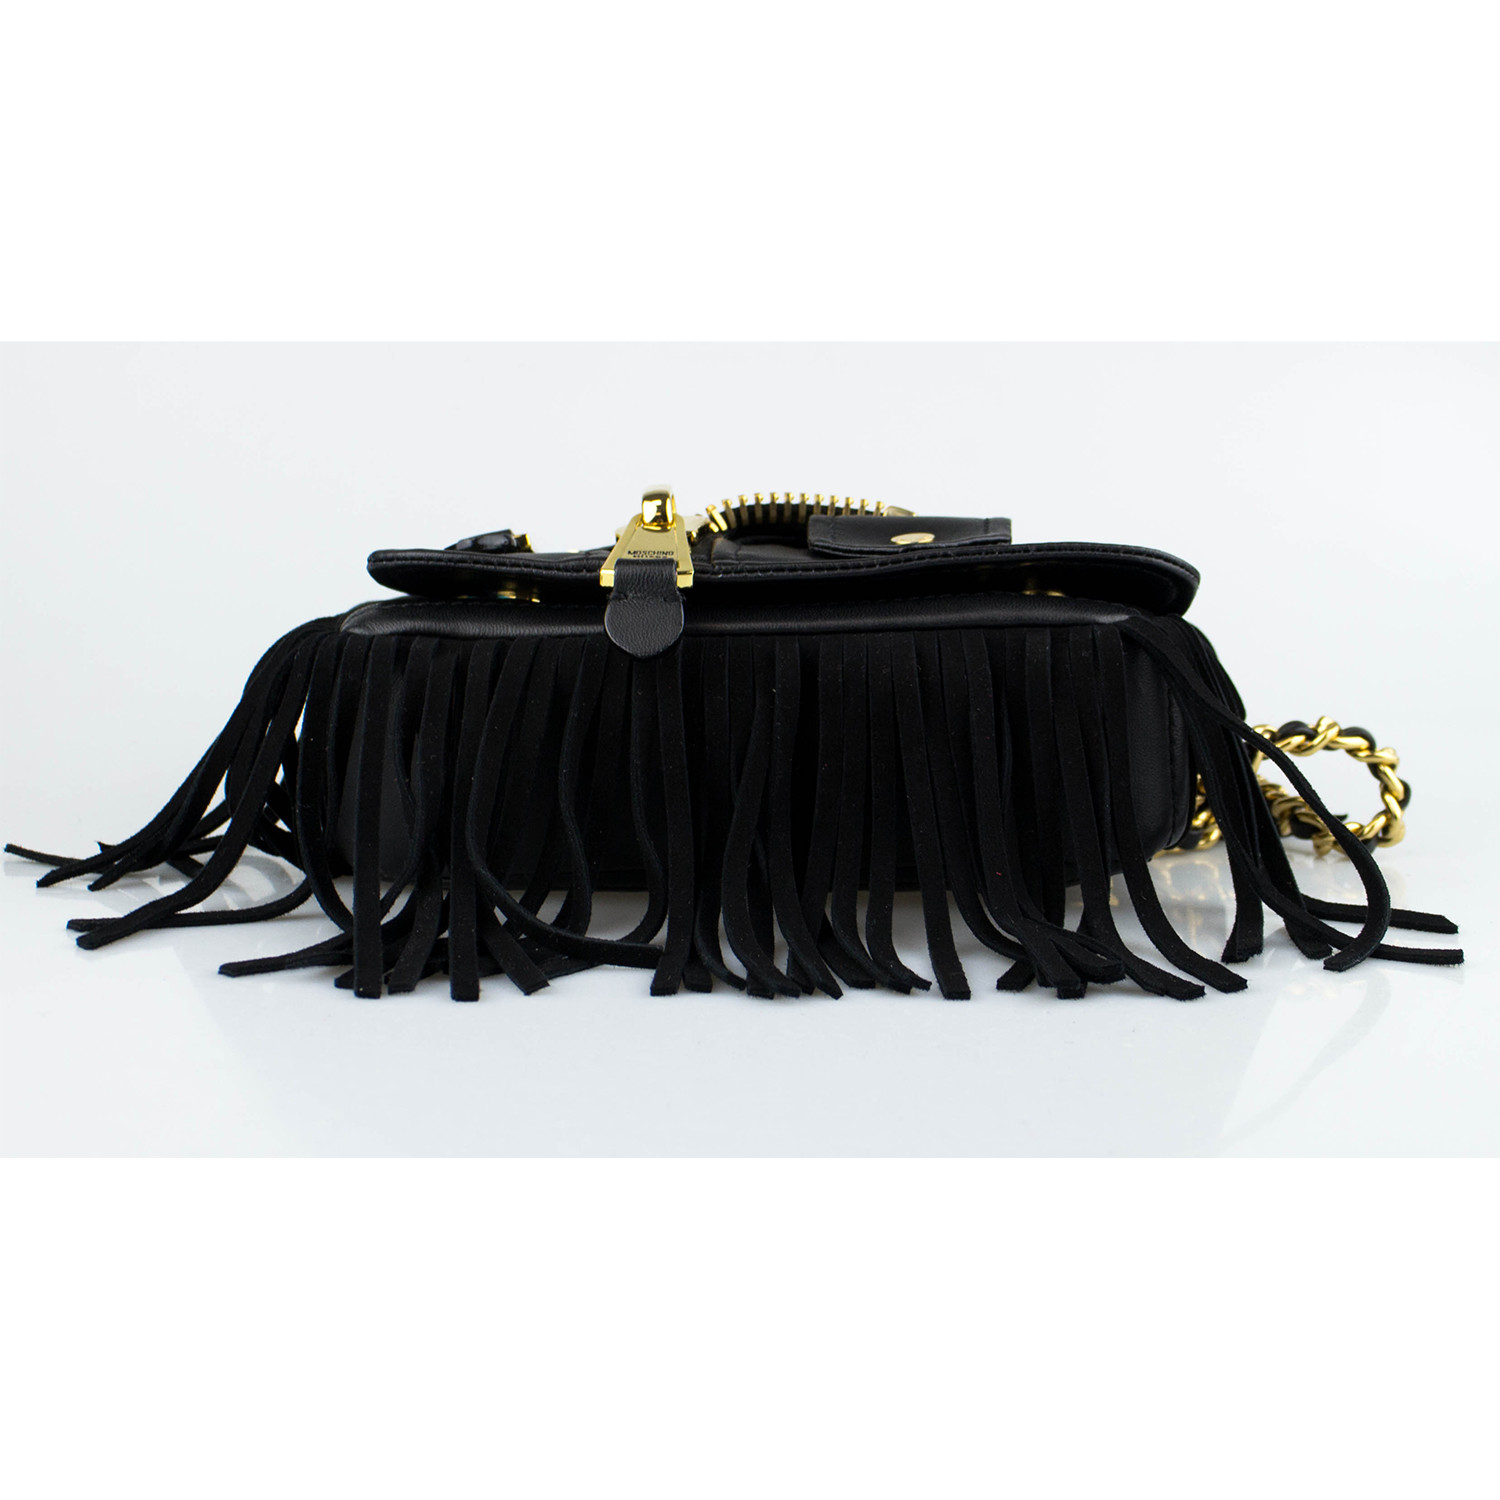 16be65cf56 Moschino // Leather Motorcycle Jacket Fringe Crossbody Handbag // Black